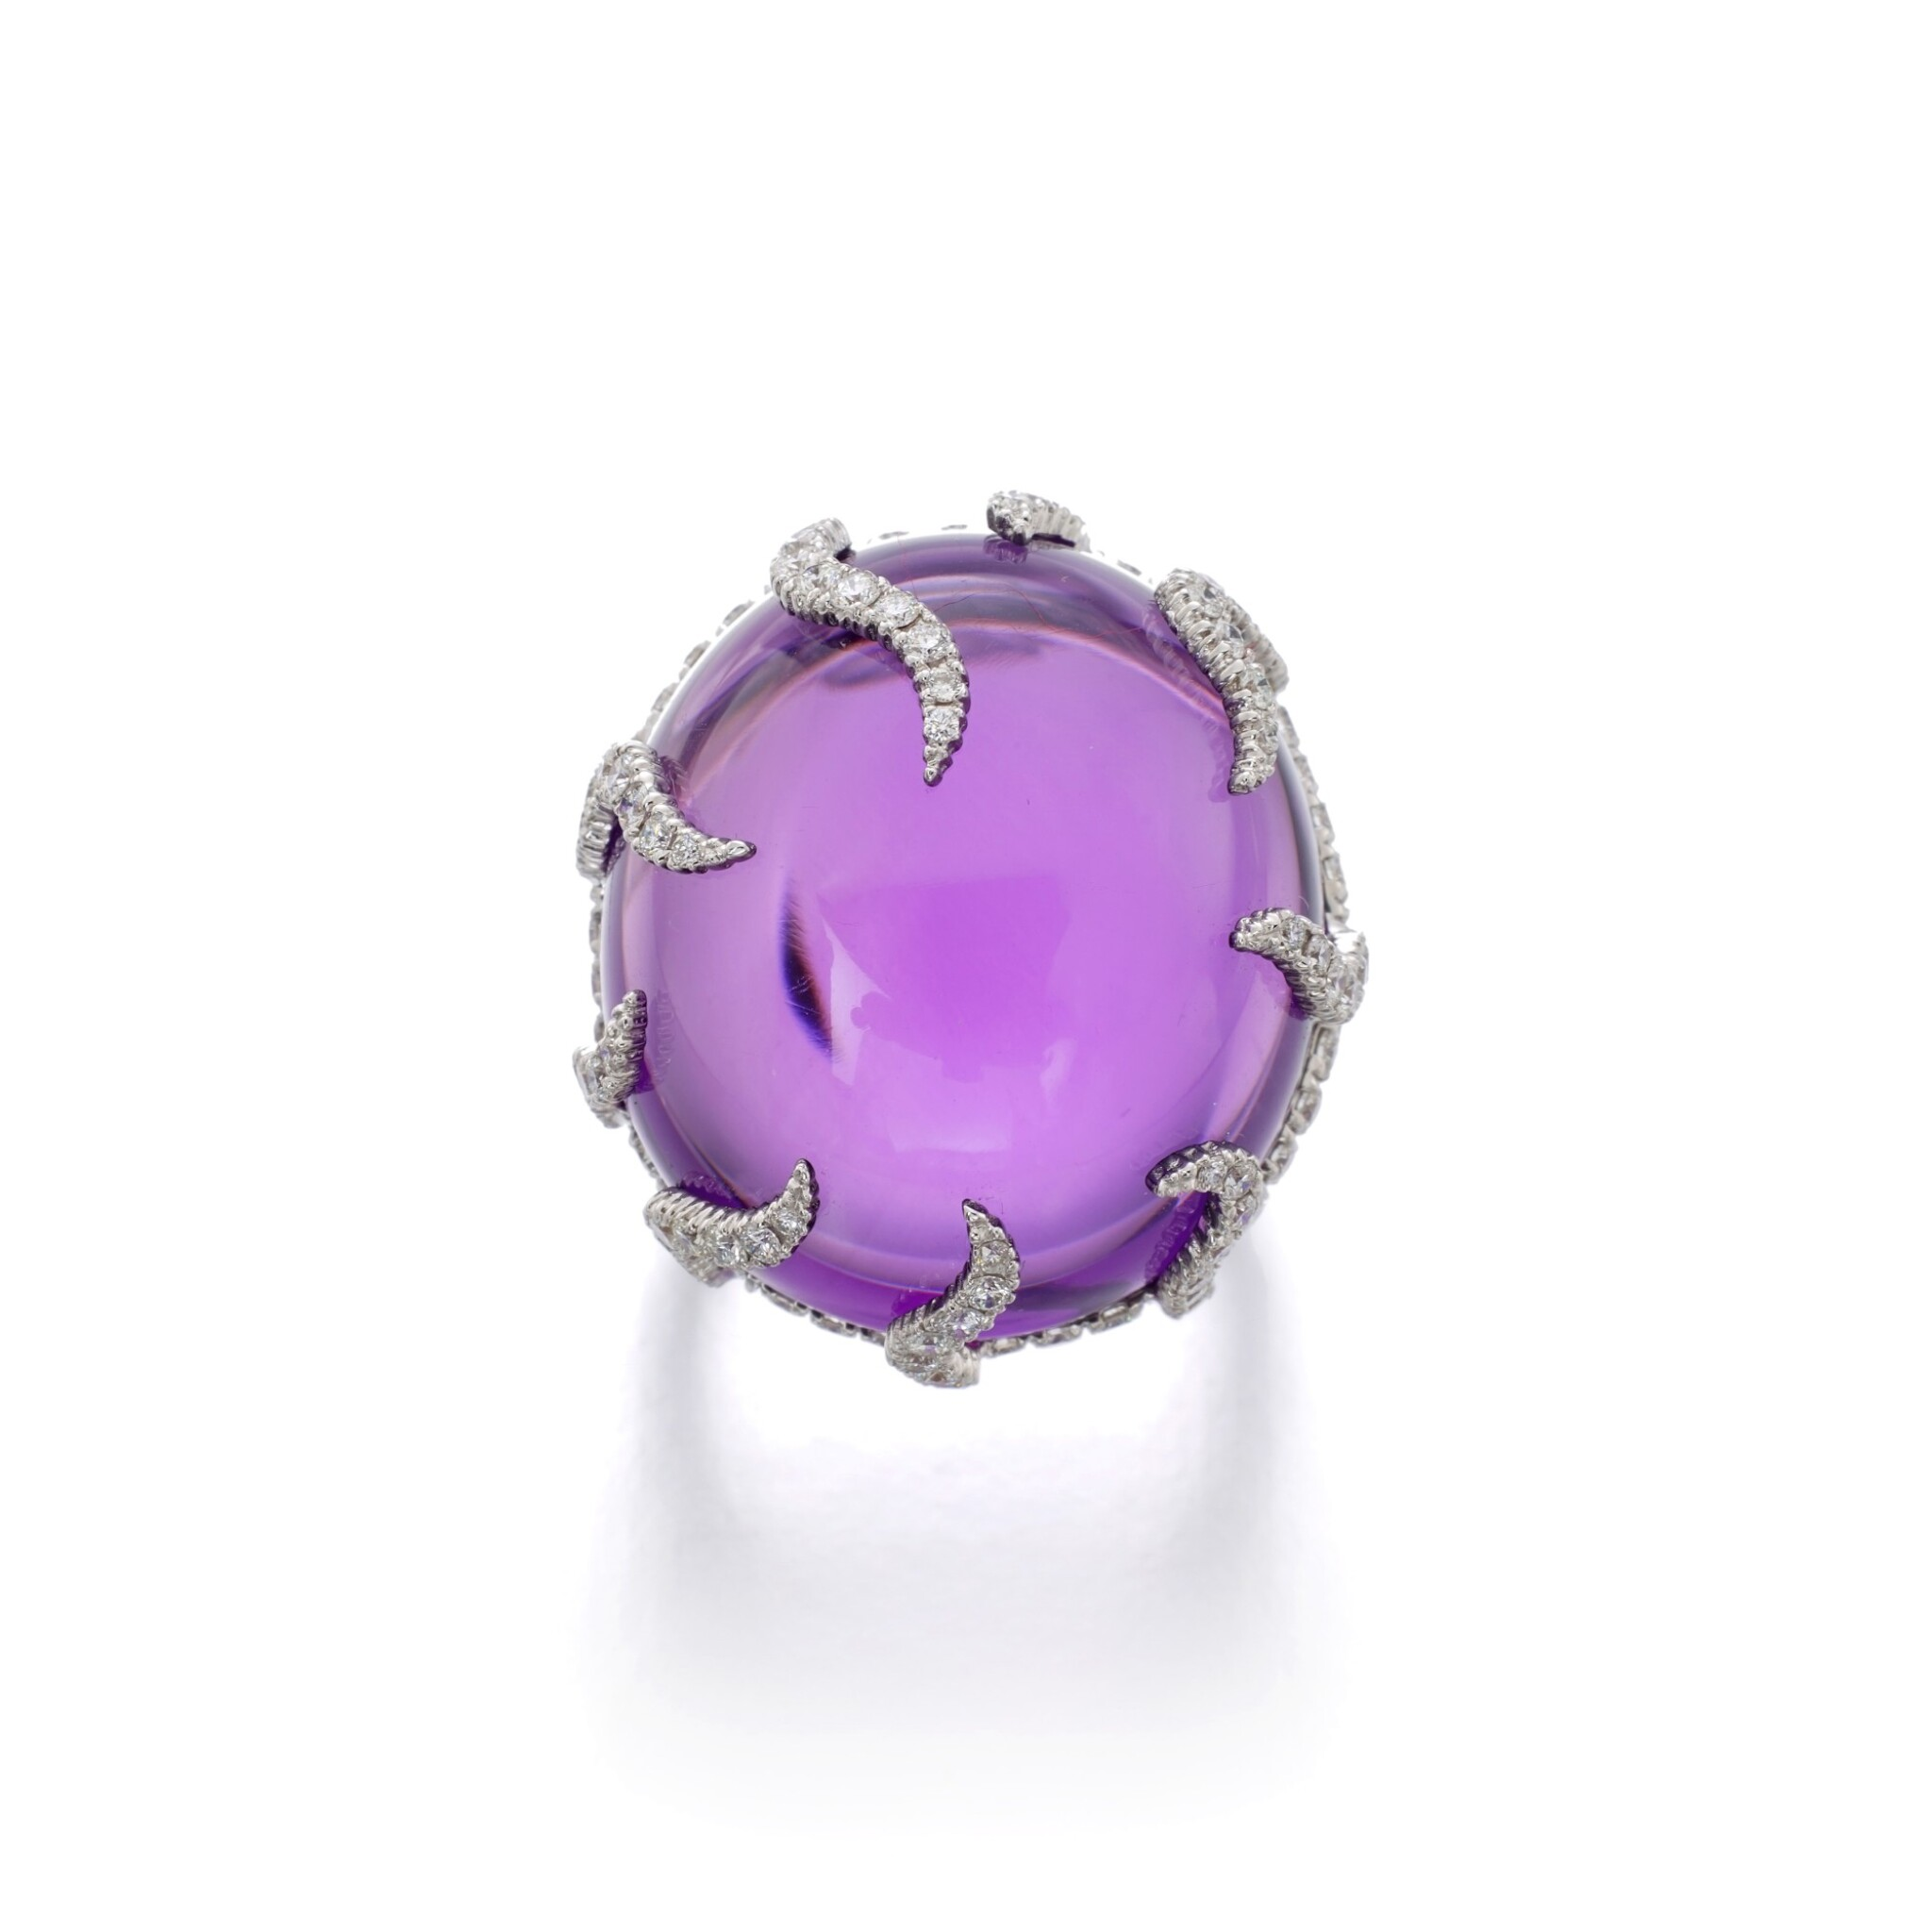 View full screen - View 1 of Lot 41. MICHELE DELLA VALLE | AMETHYST AND DIAMOND RING.